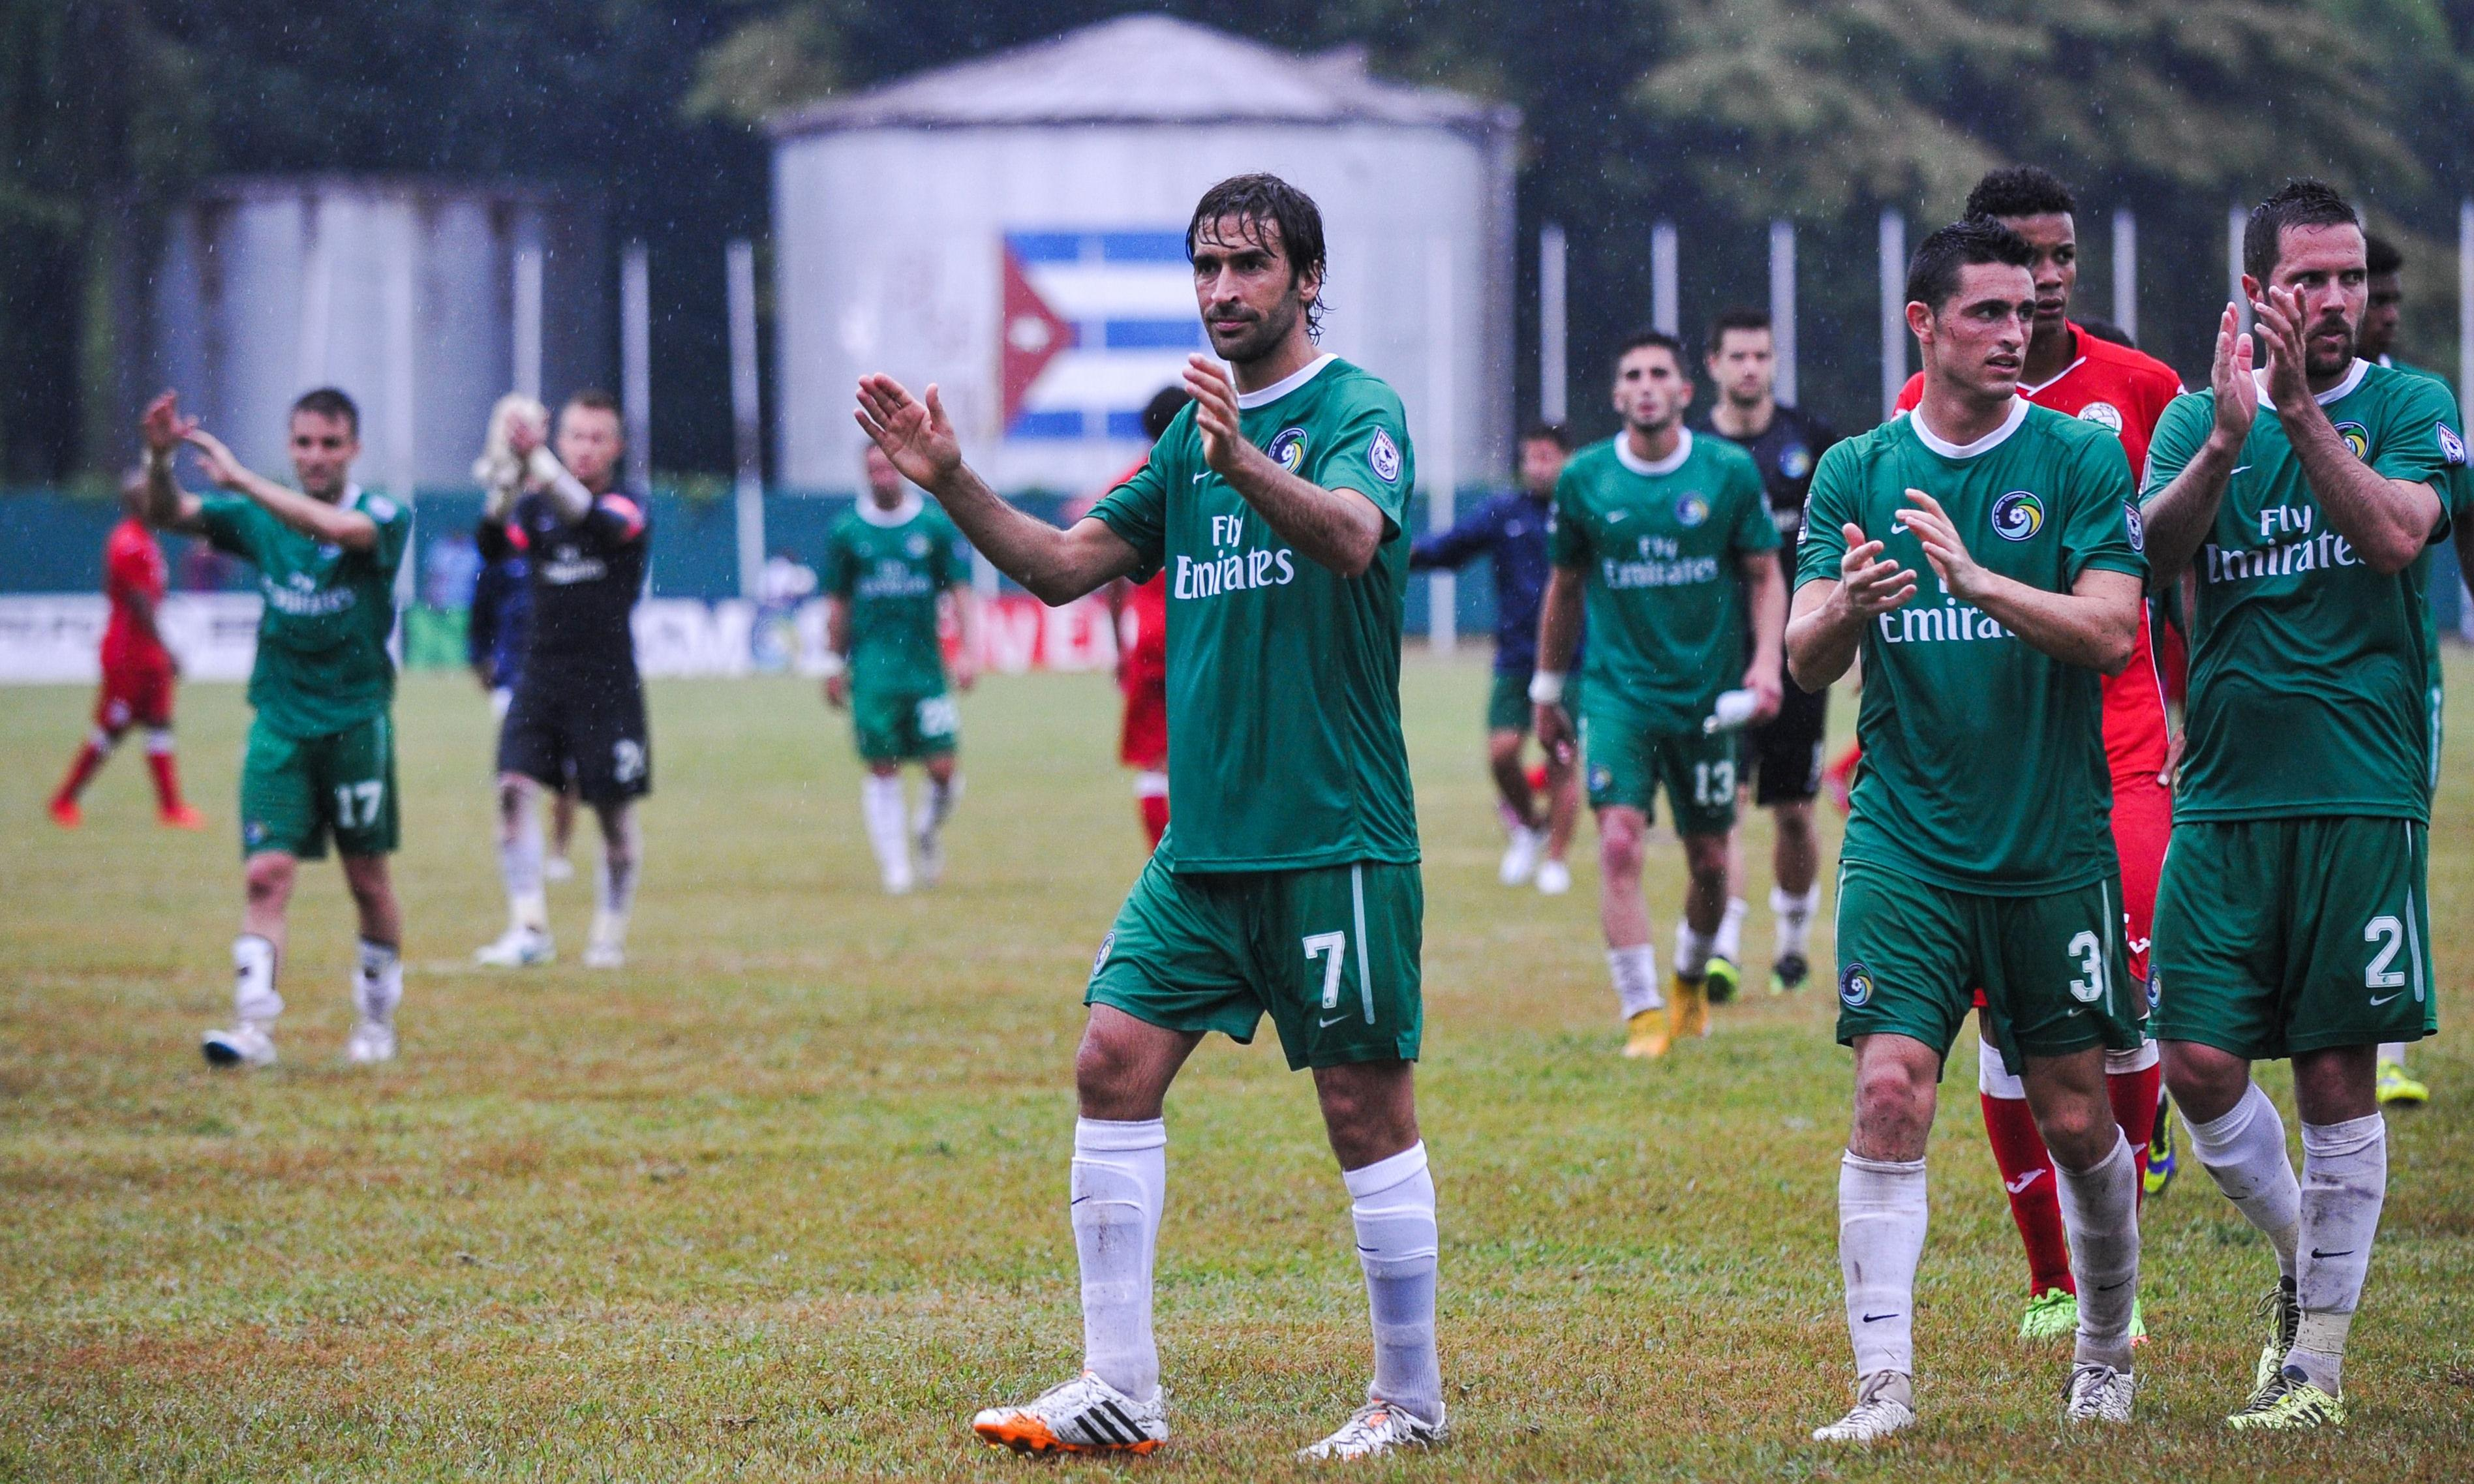 TRAILER: 'A Bridge to Cuba' Goes Behind the Scenes of the New York Cosmos' Historic Match in Havana